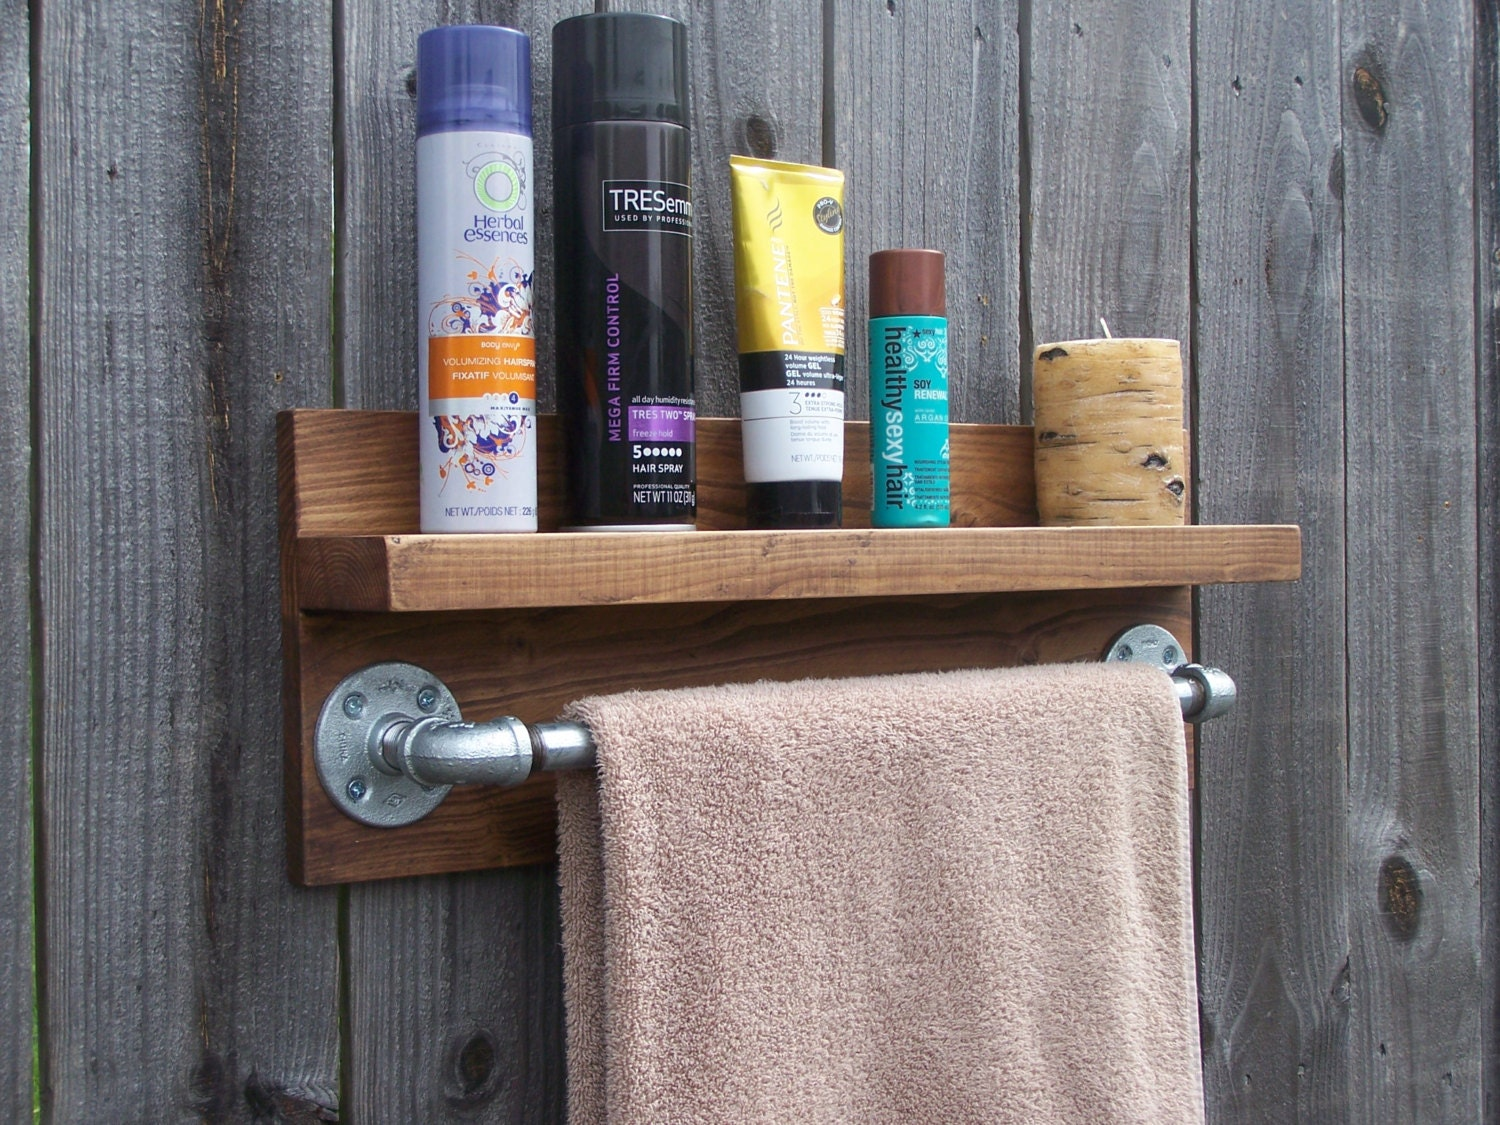 Rustic Industrial Bathroom Wall Shelf With 18 Inch Metal Towel